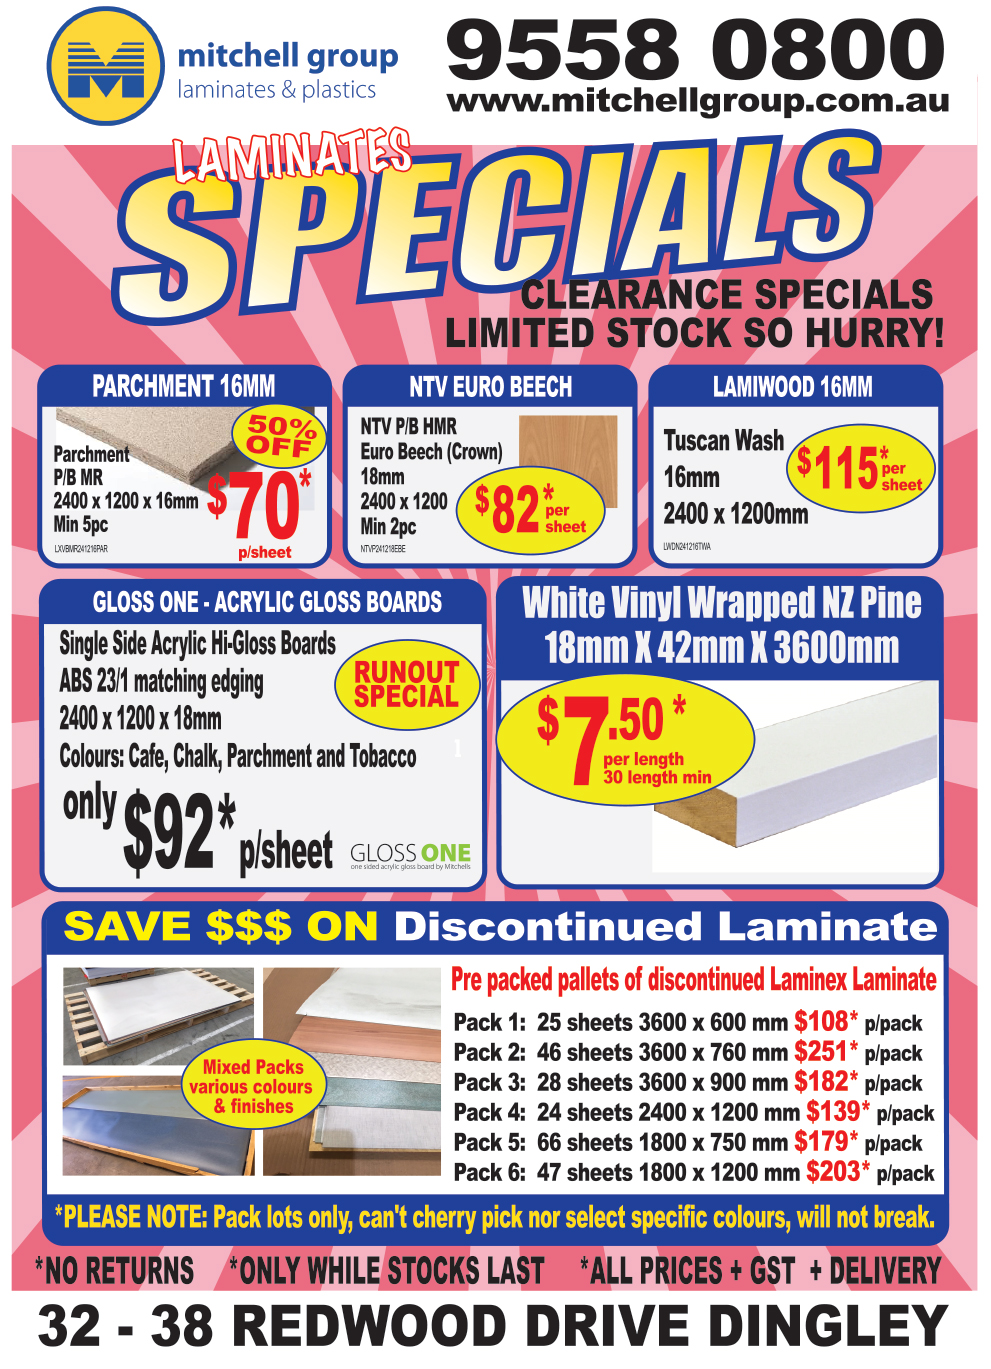 Laminates Runout Specials March 2018 website